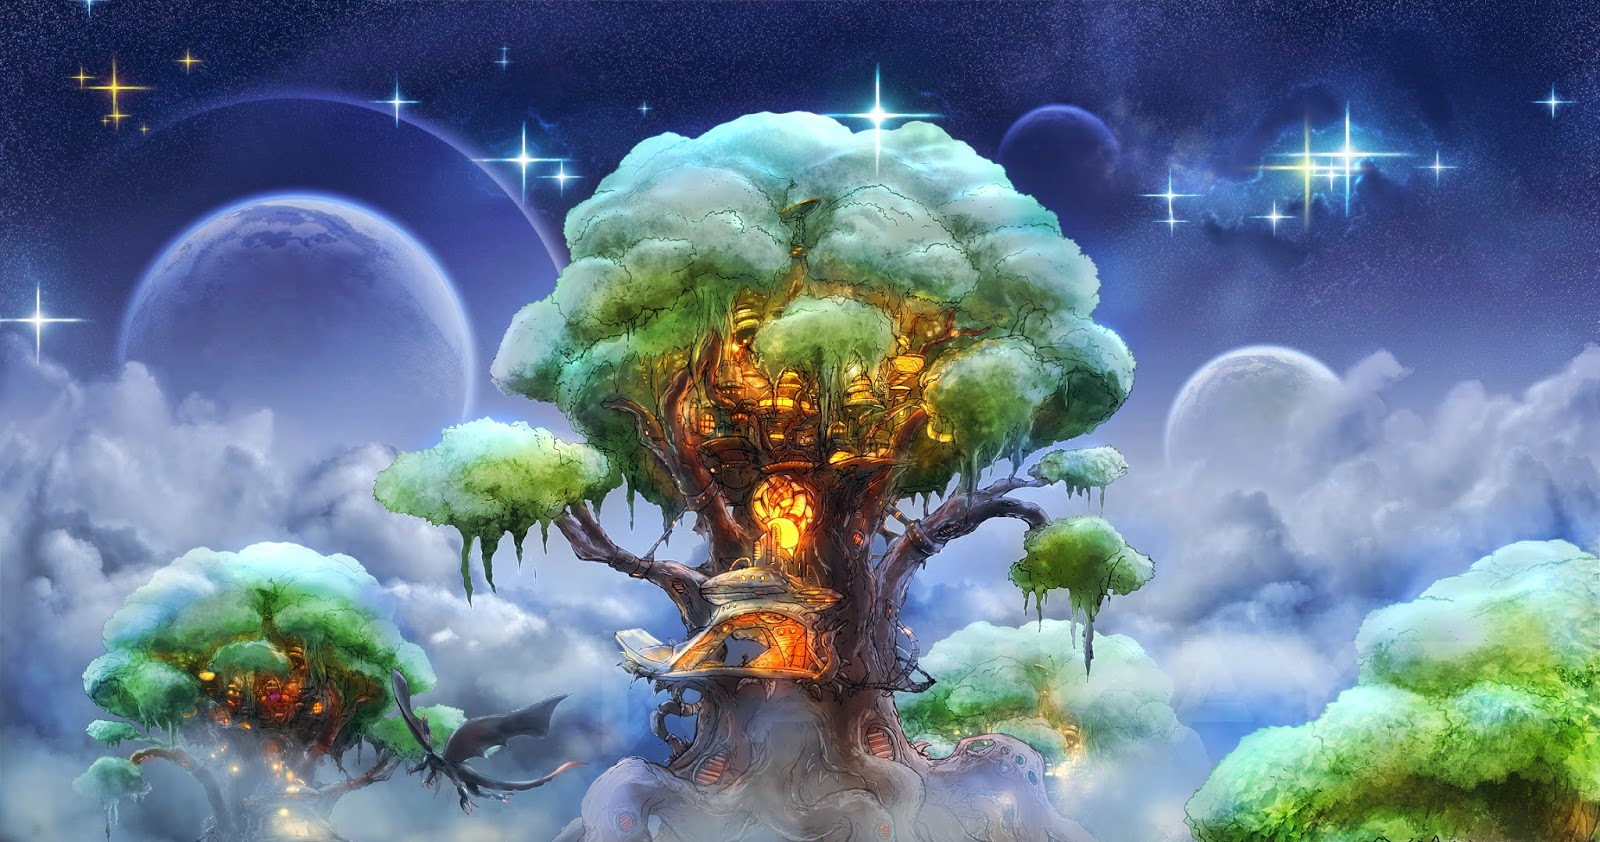 Tree-house-in-sky-dream-night-with-stars-image-picture.jpg